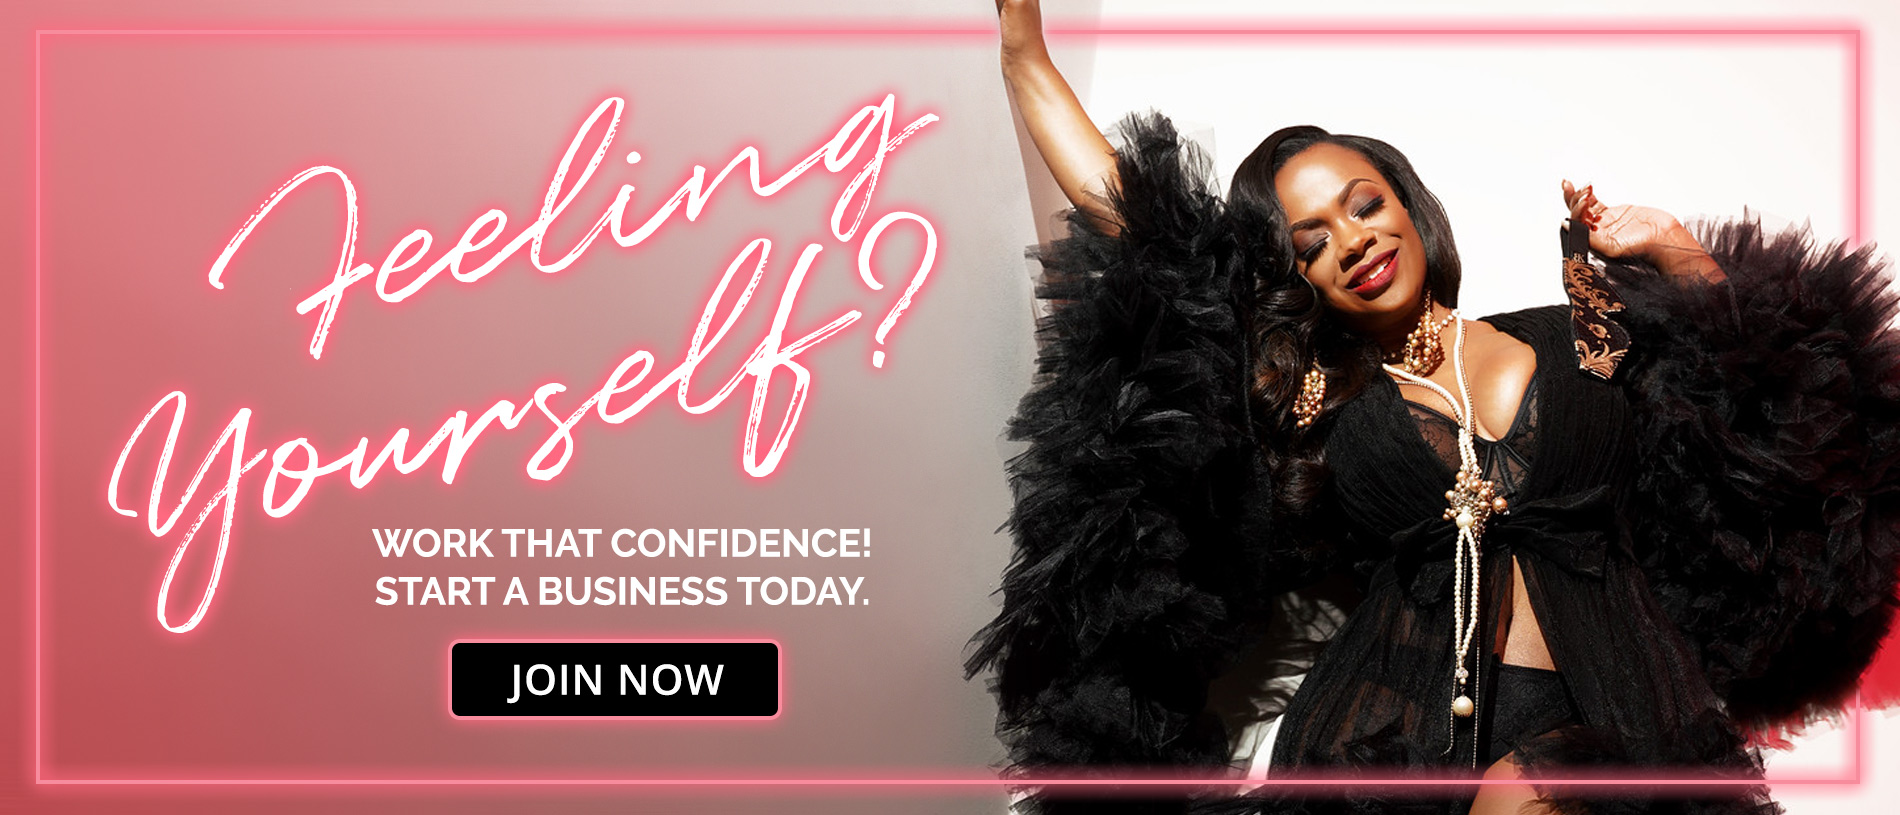 Are you Feeling Yourself? Start a BK Business!